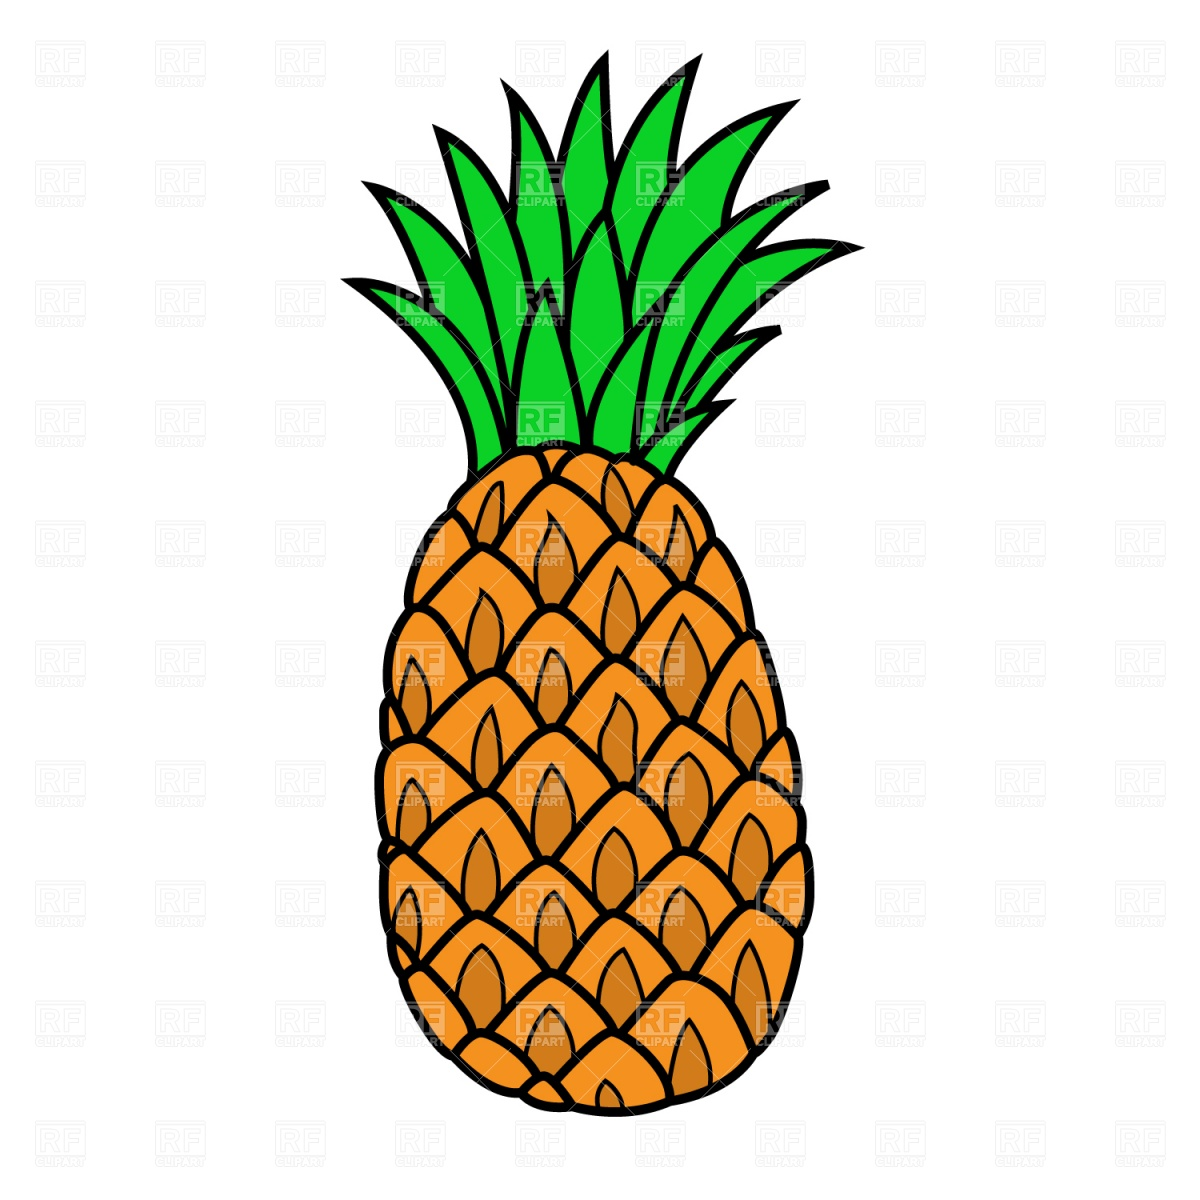 Free pineapple clipart picture freeuse download Best Pineapple Clipart #3172 - Clipartion.com picture freeuse download